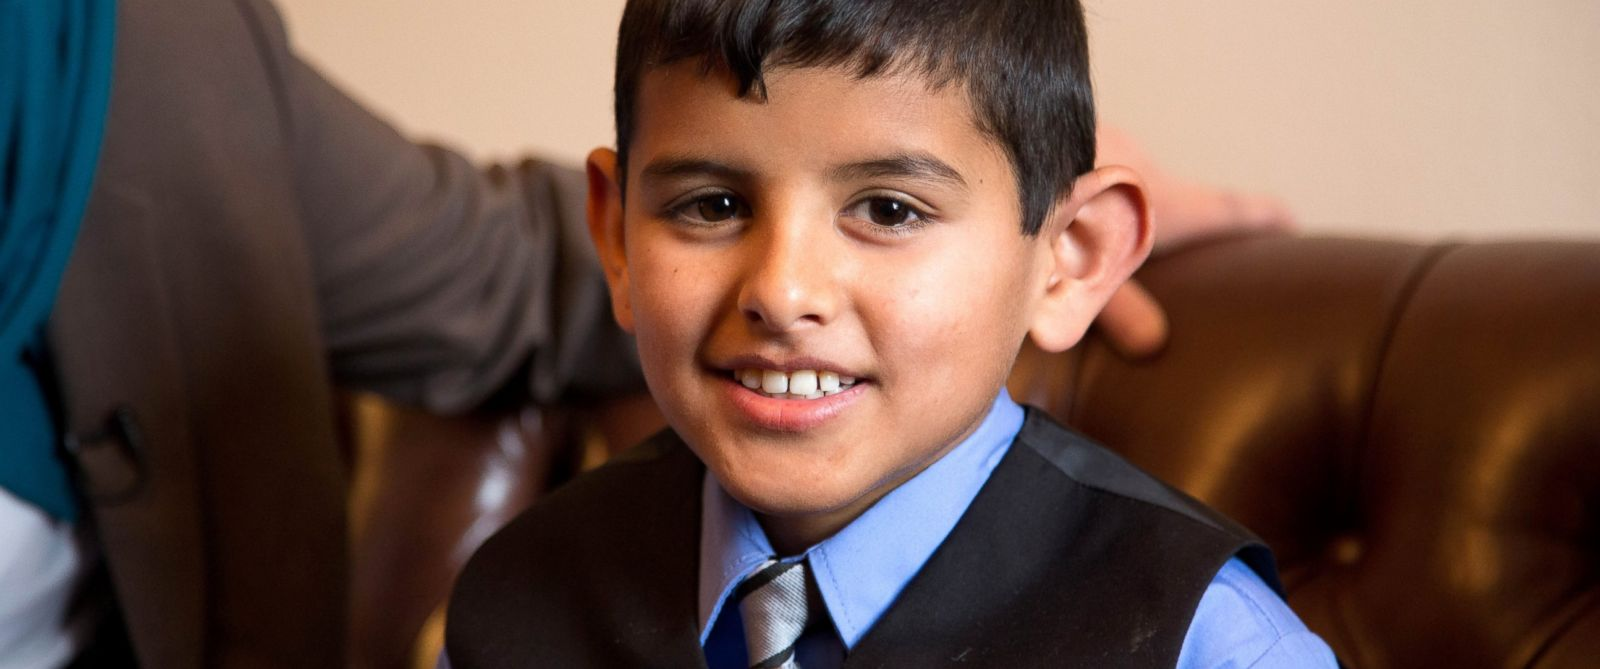 PHOTO: Nine-year old Ahmad Alkhalaf lost both of his arms after an airstrike hit his Syrian refugee camp. He is Congressman Seth Moultons guest for the State of the Union.